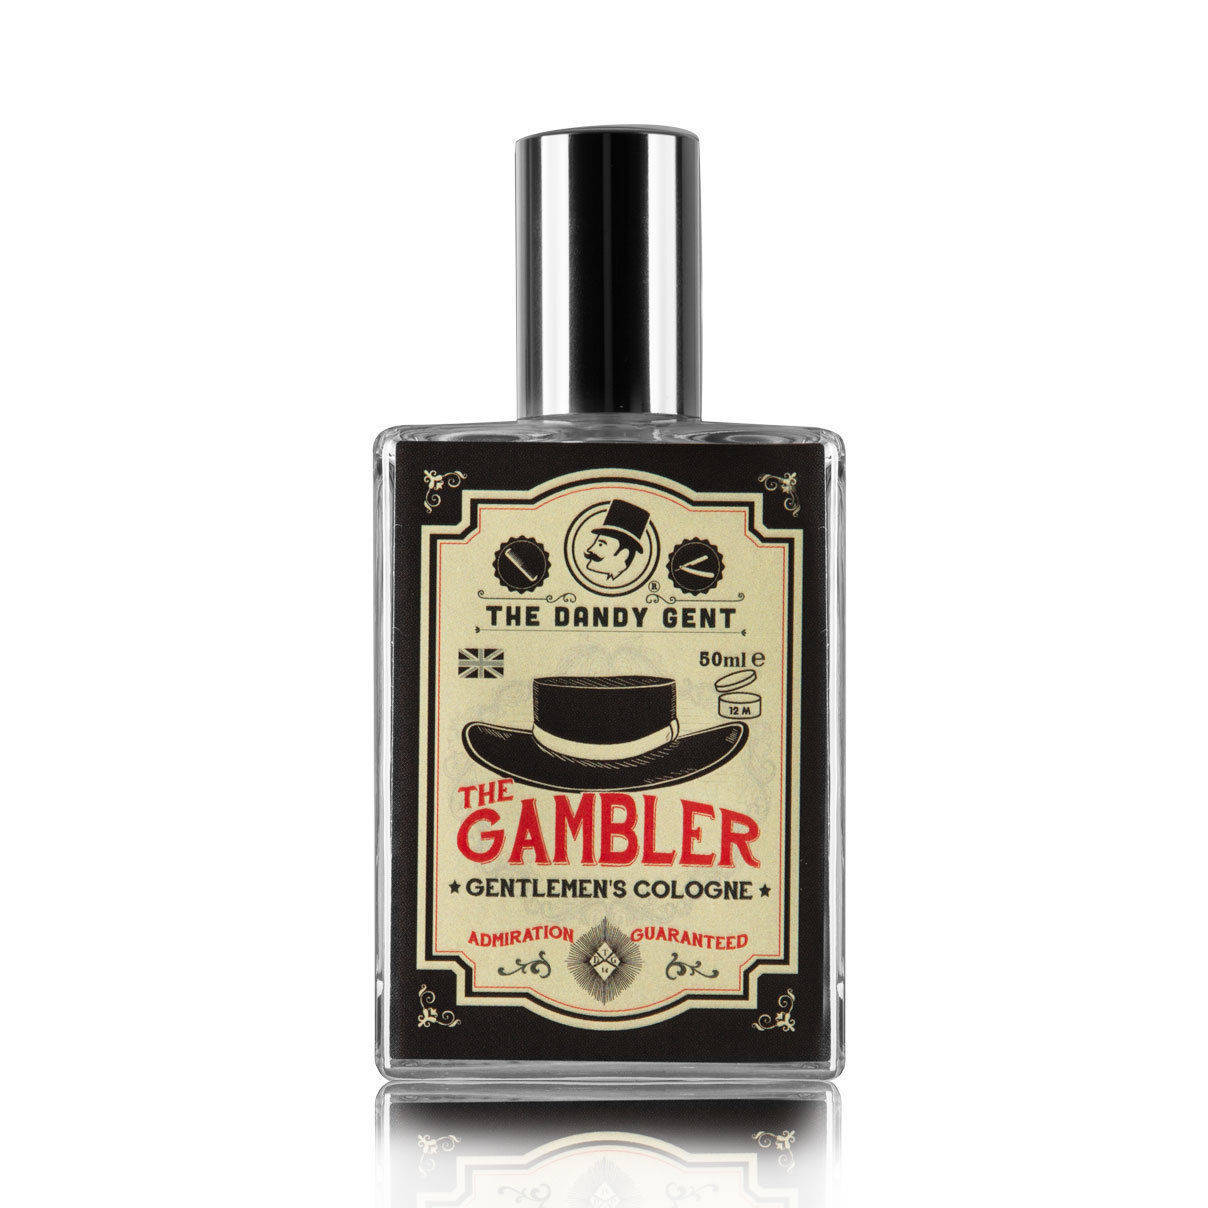 The Gambler - cologne